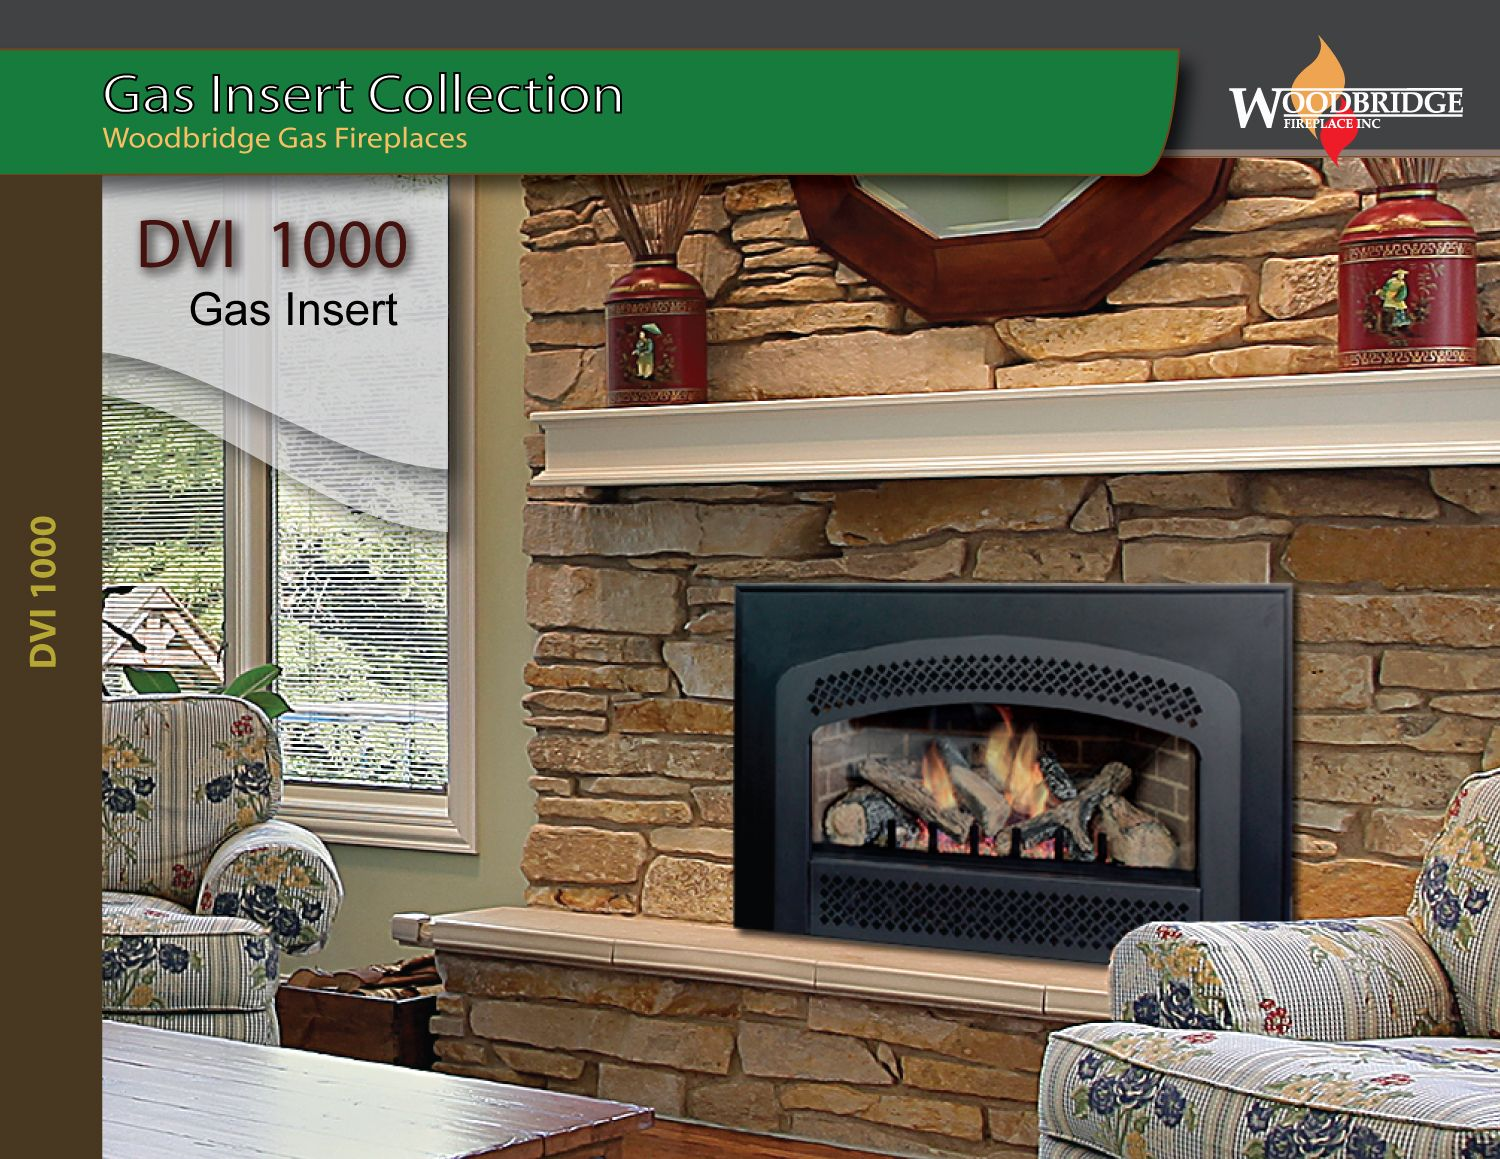 Our Direct Vent Gas Insert Dvi 1000 Is Designed To Fit The Larger Wood Burning Fireplaces With Minimum 32 W X 23 Gas Fireplace Fireplace Fireplace Inserts